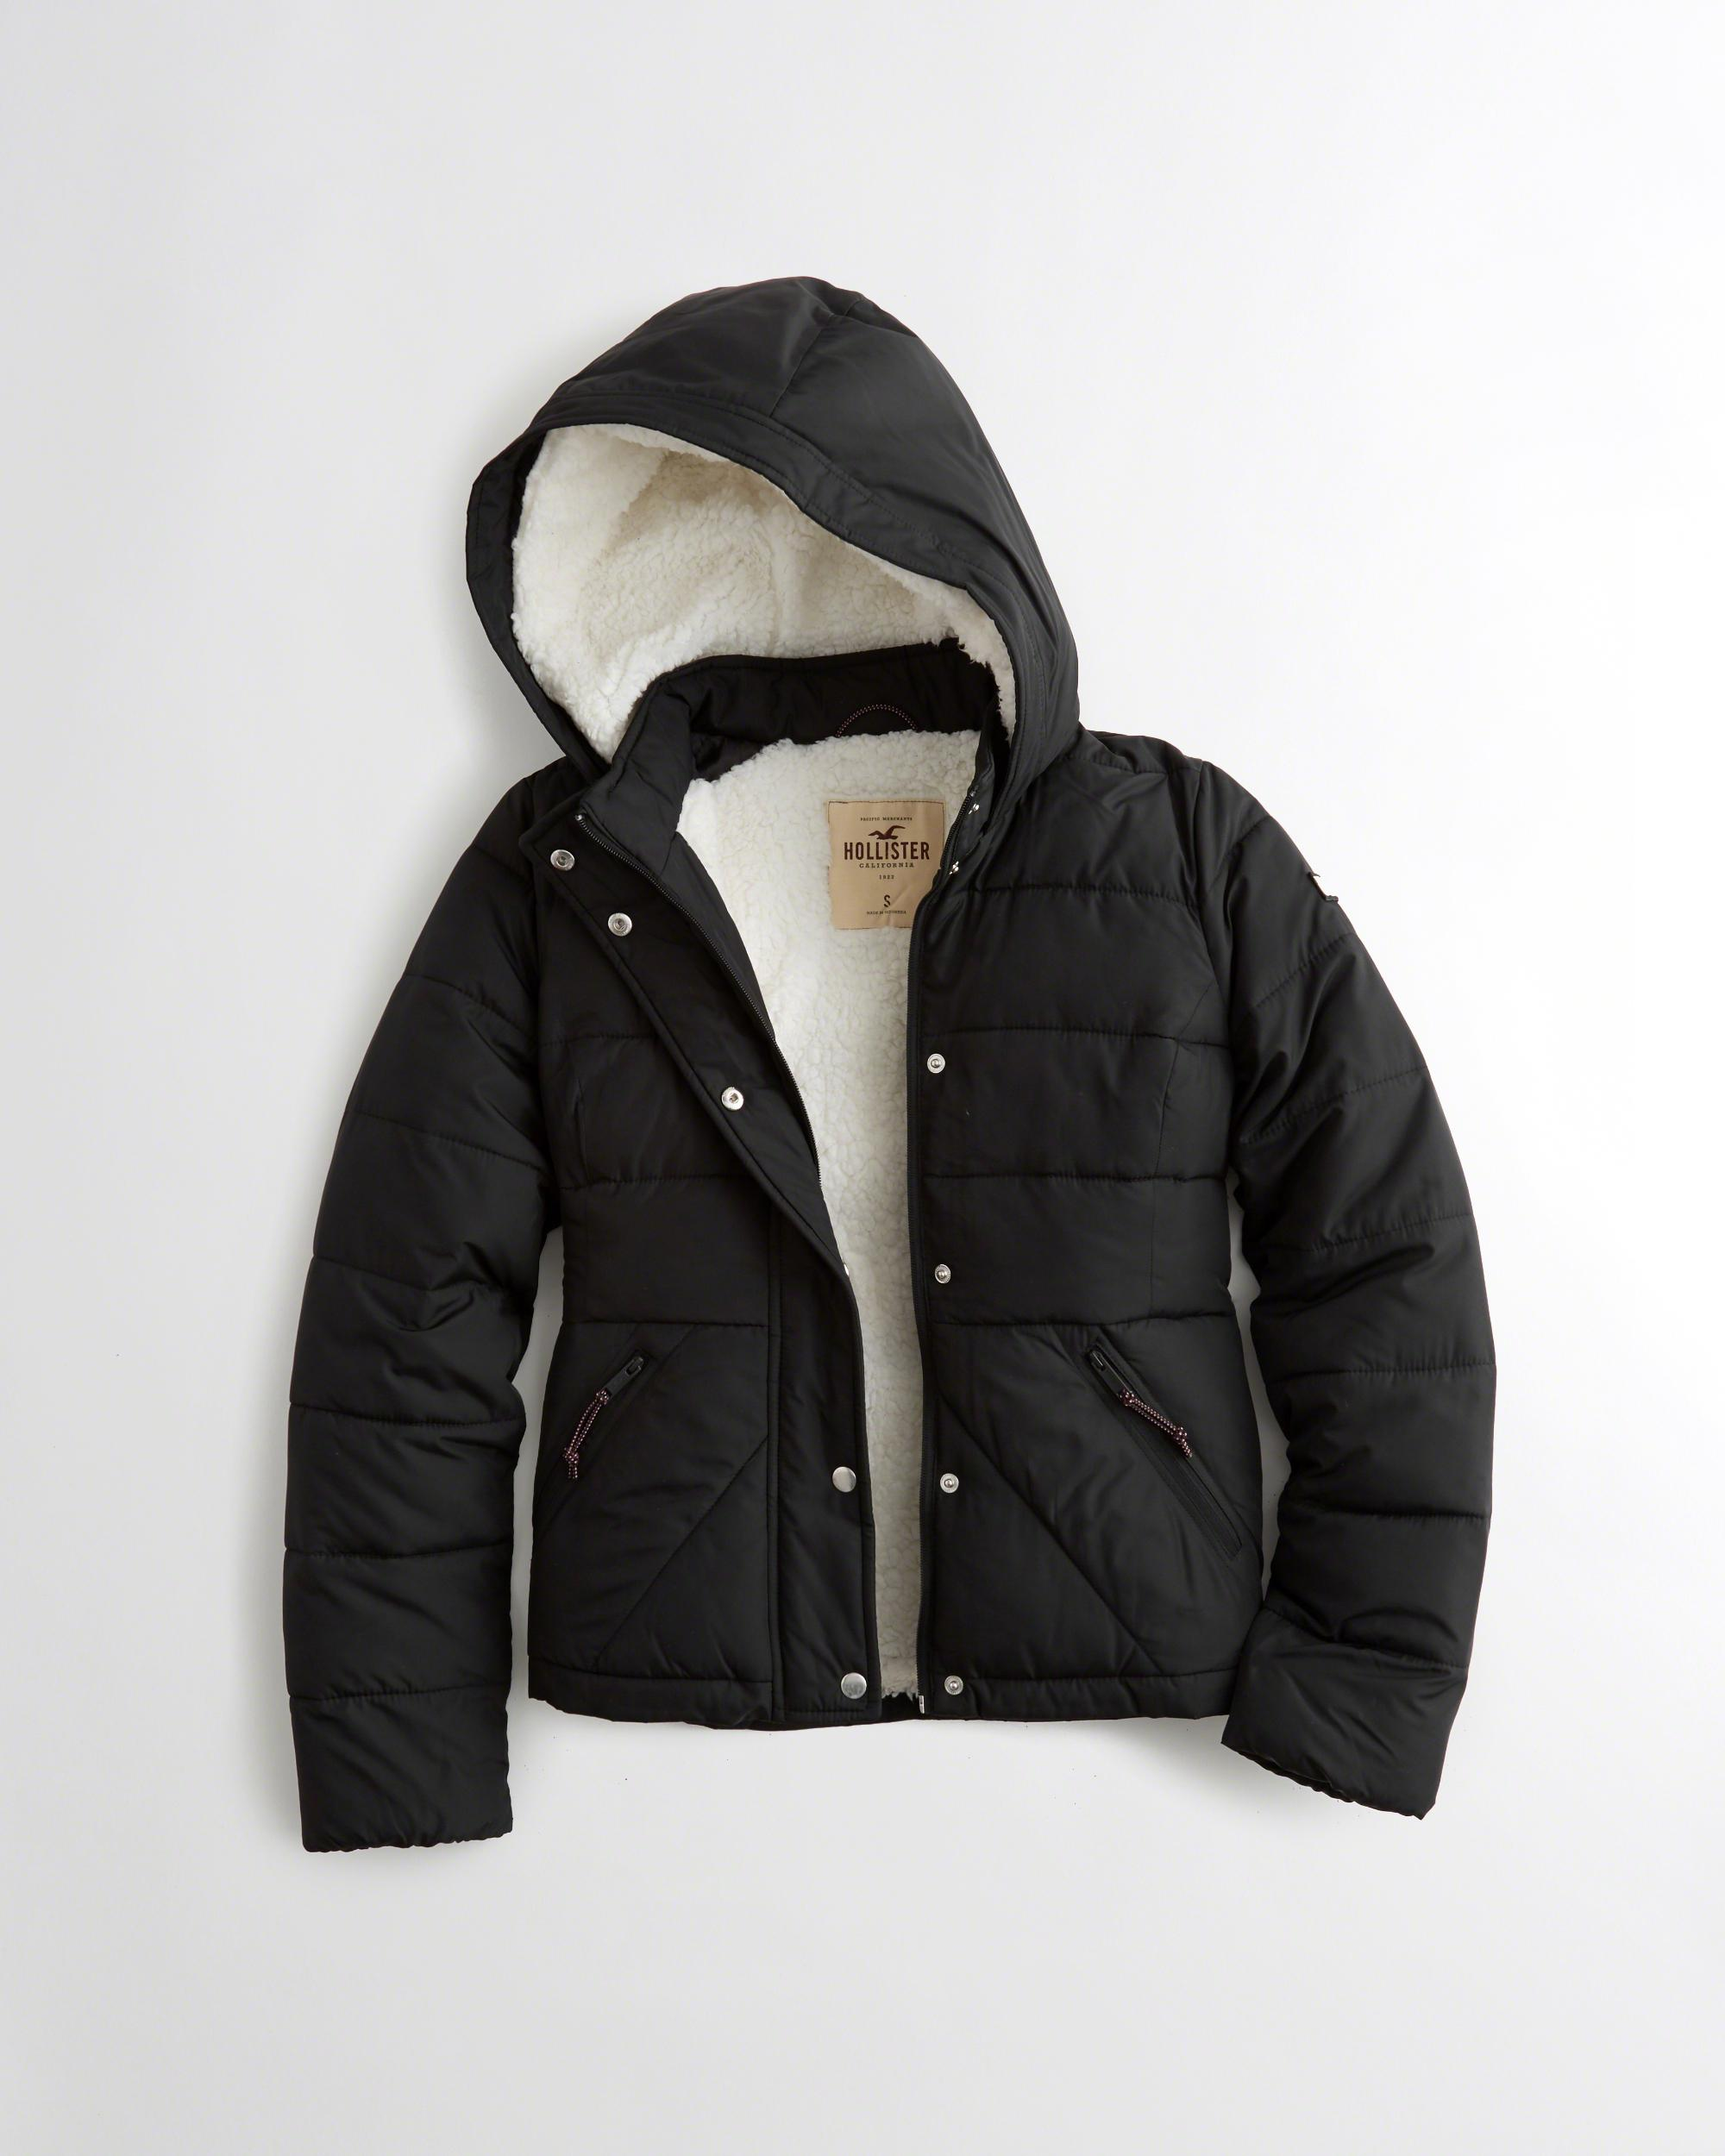 hollister sherpa lined puffer jacket in black lyst. Black Bedroom Furniture Sets. Home Design Ideas